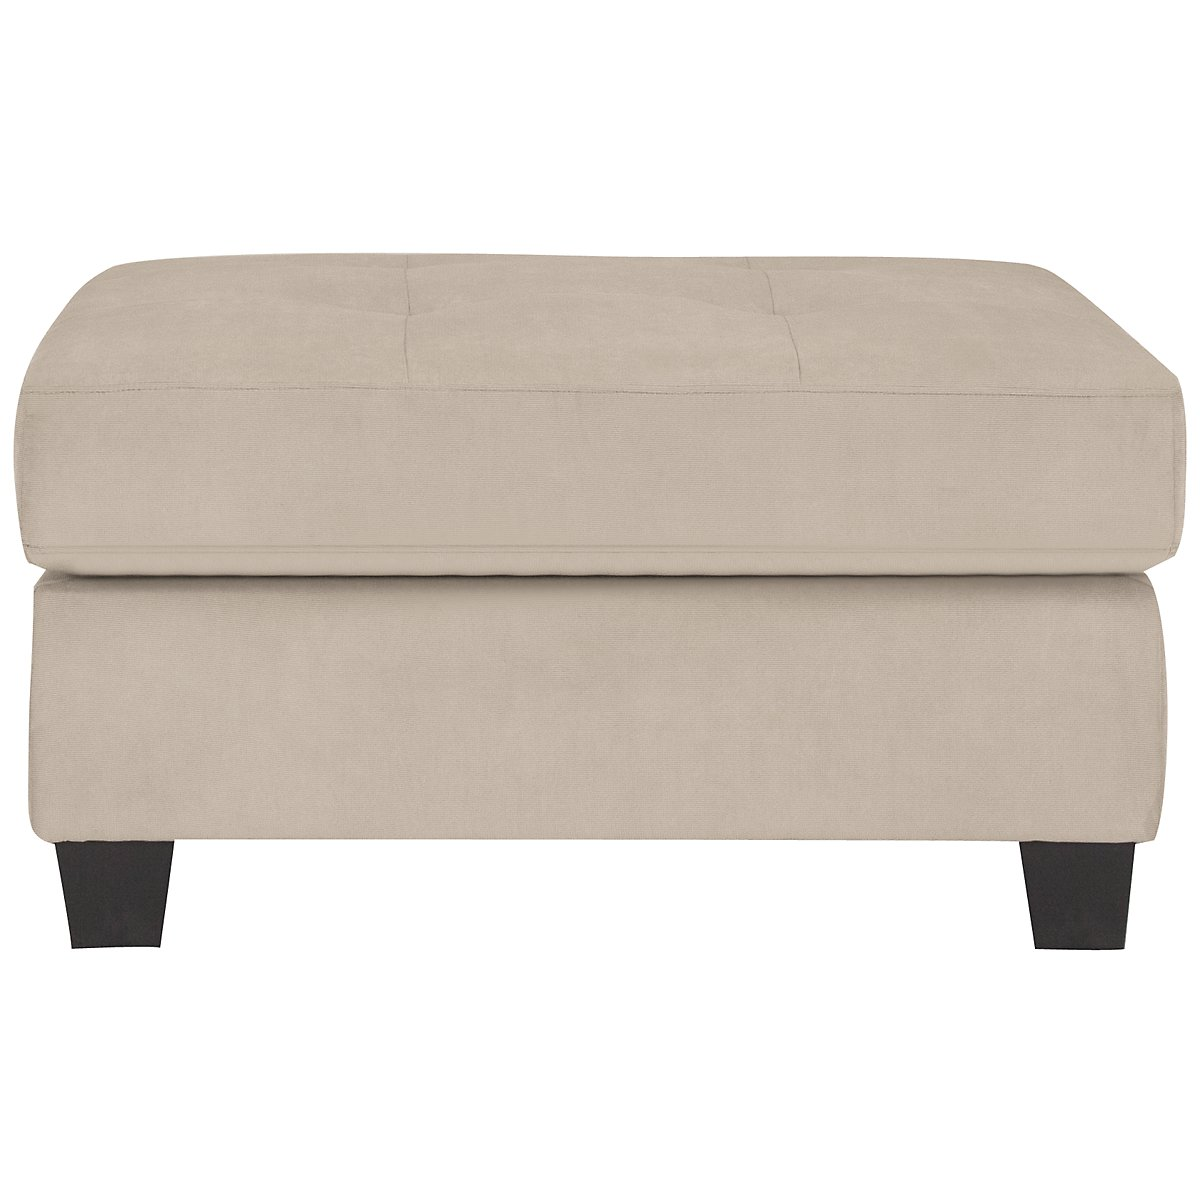 Mercer3 Light Taupe Microfiber Ottoman. VIEW LARGER - City Furniture: Mercer3 Lt Taupe Microfiber Ottoman